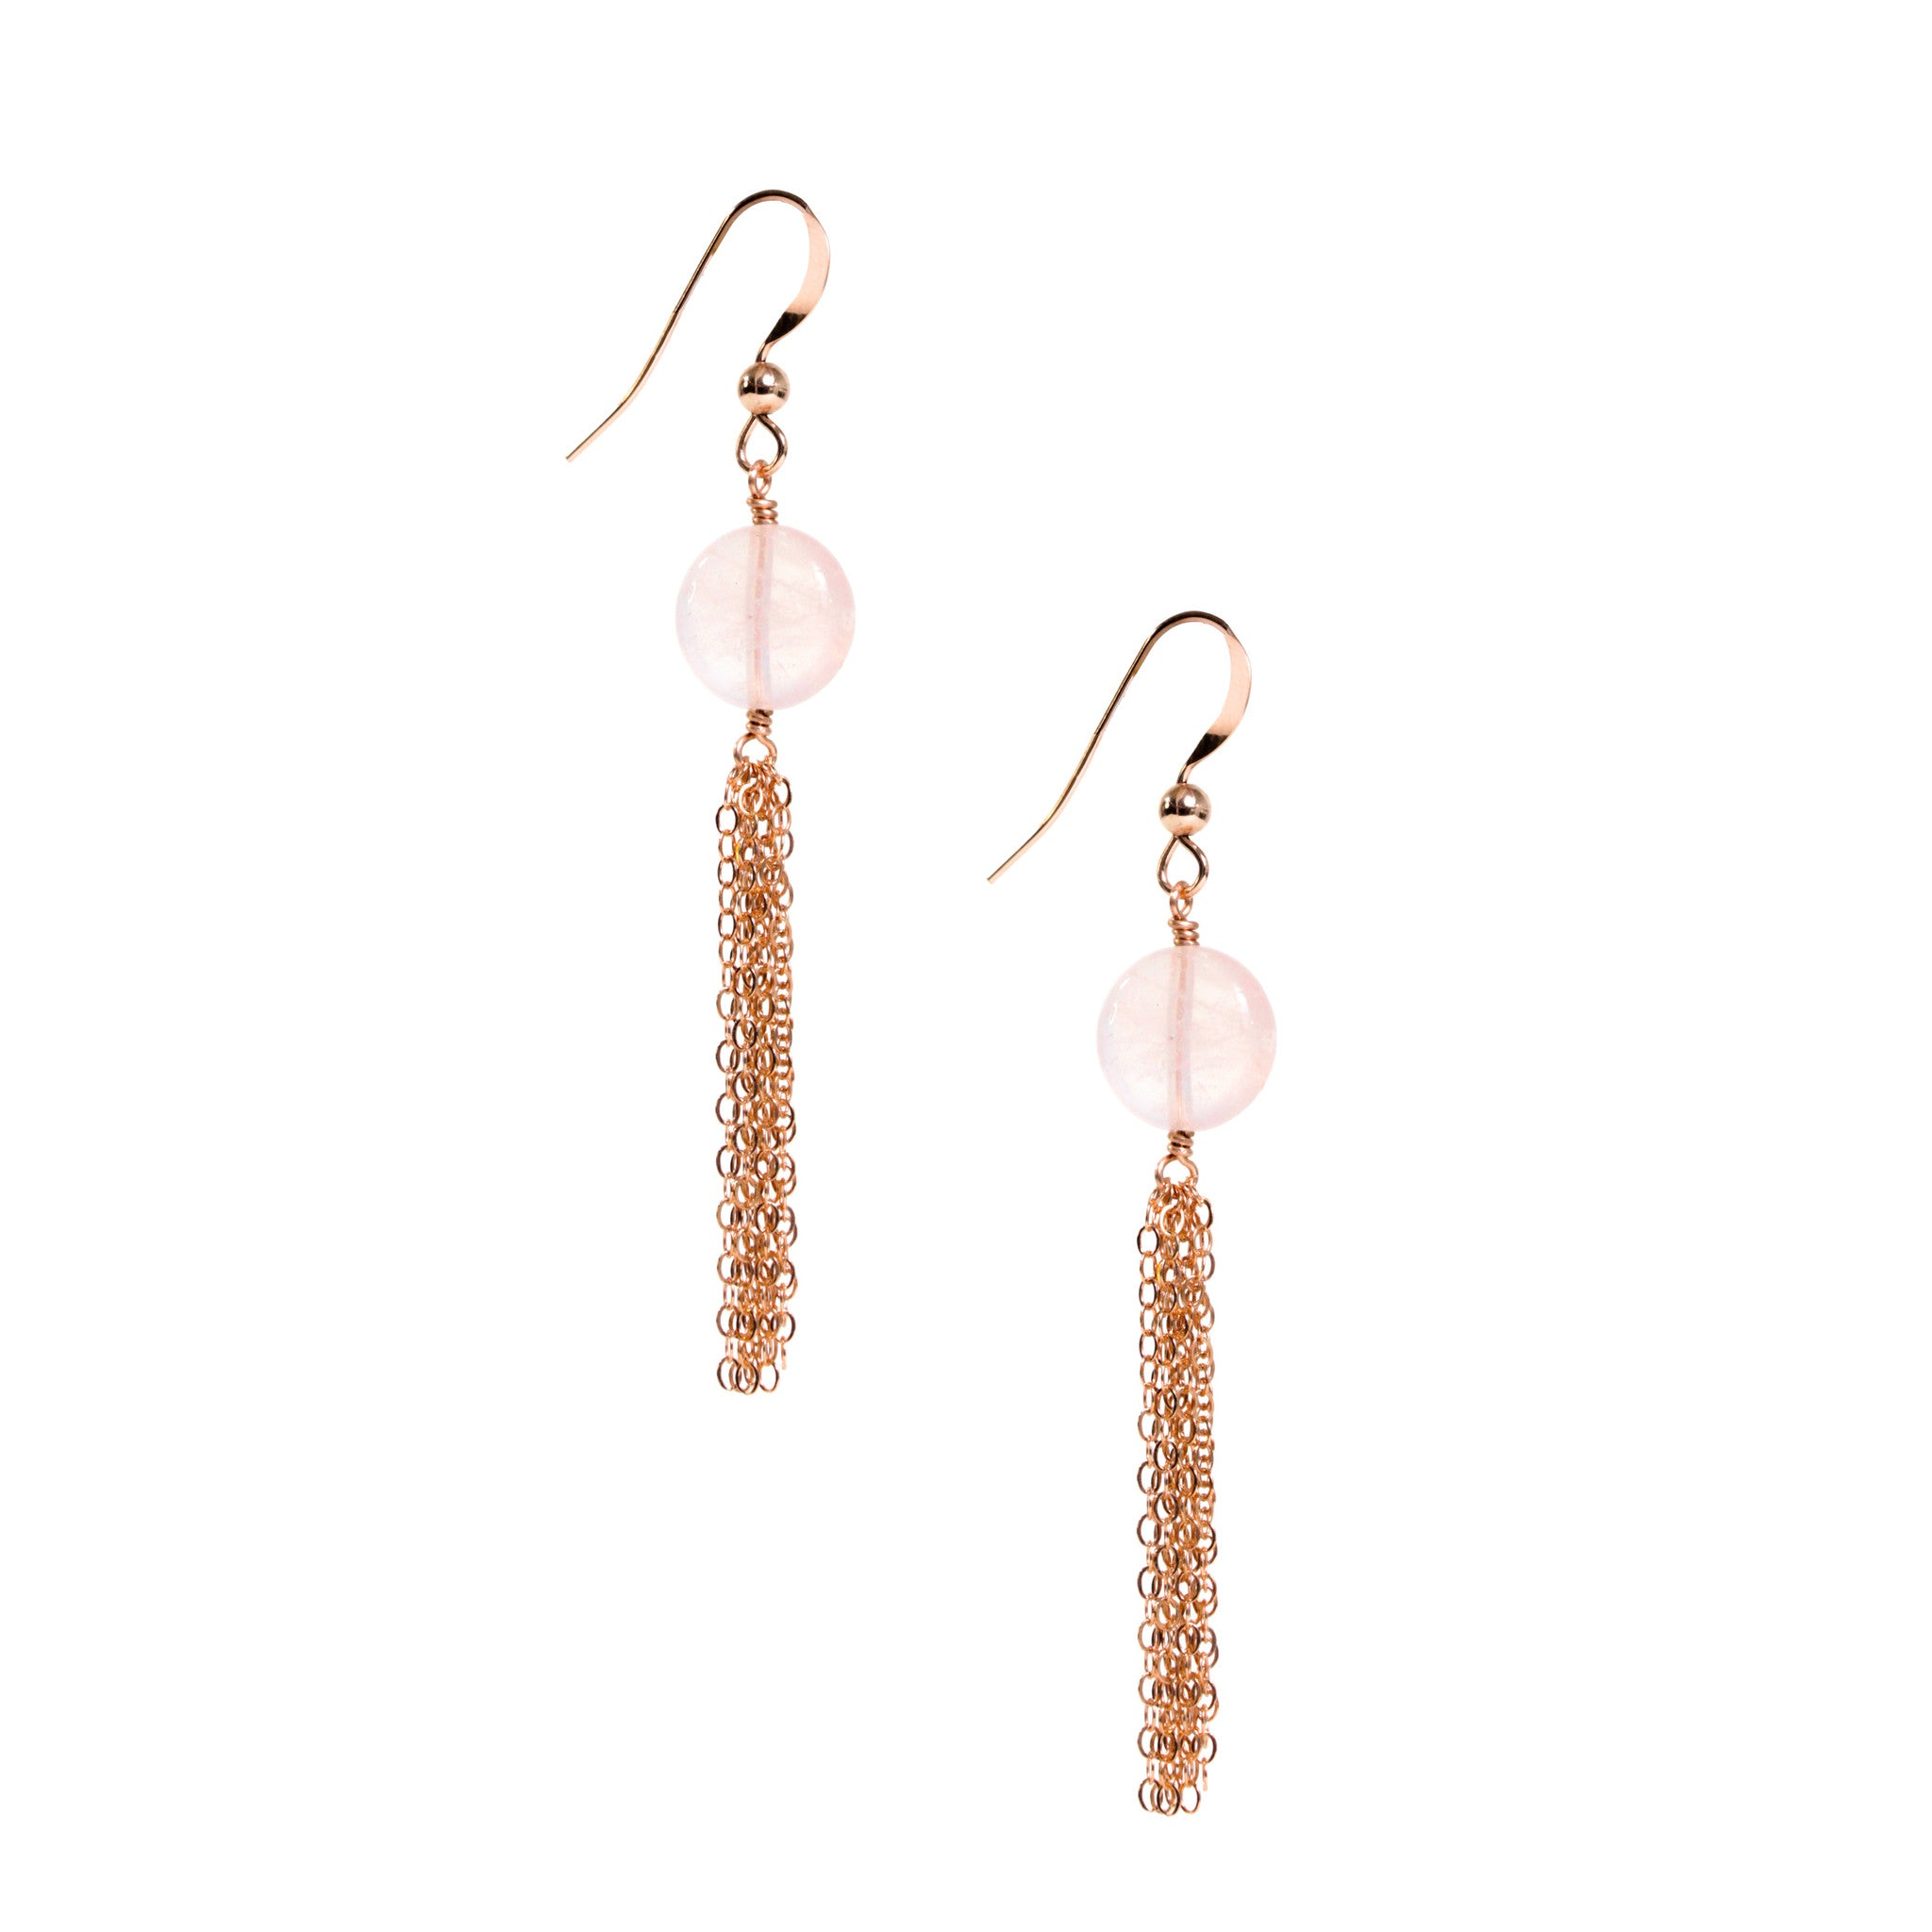 products emma earrings img madison fringe earring